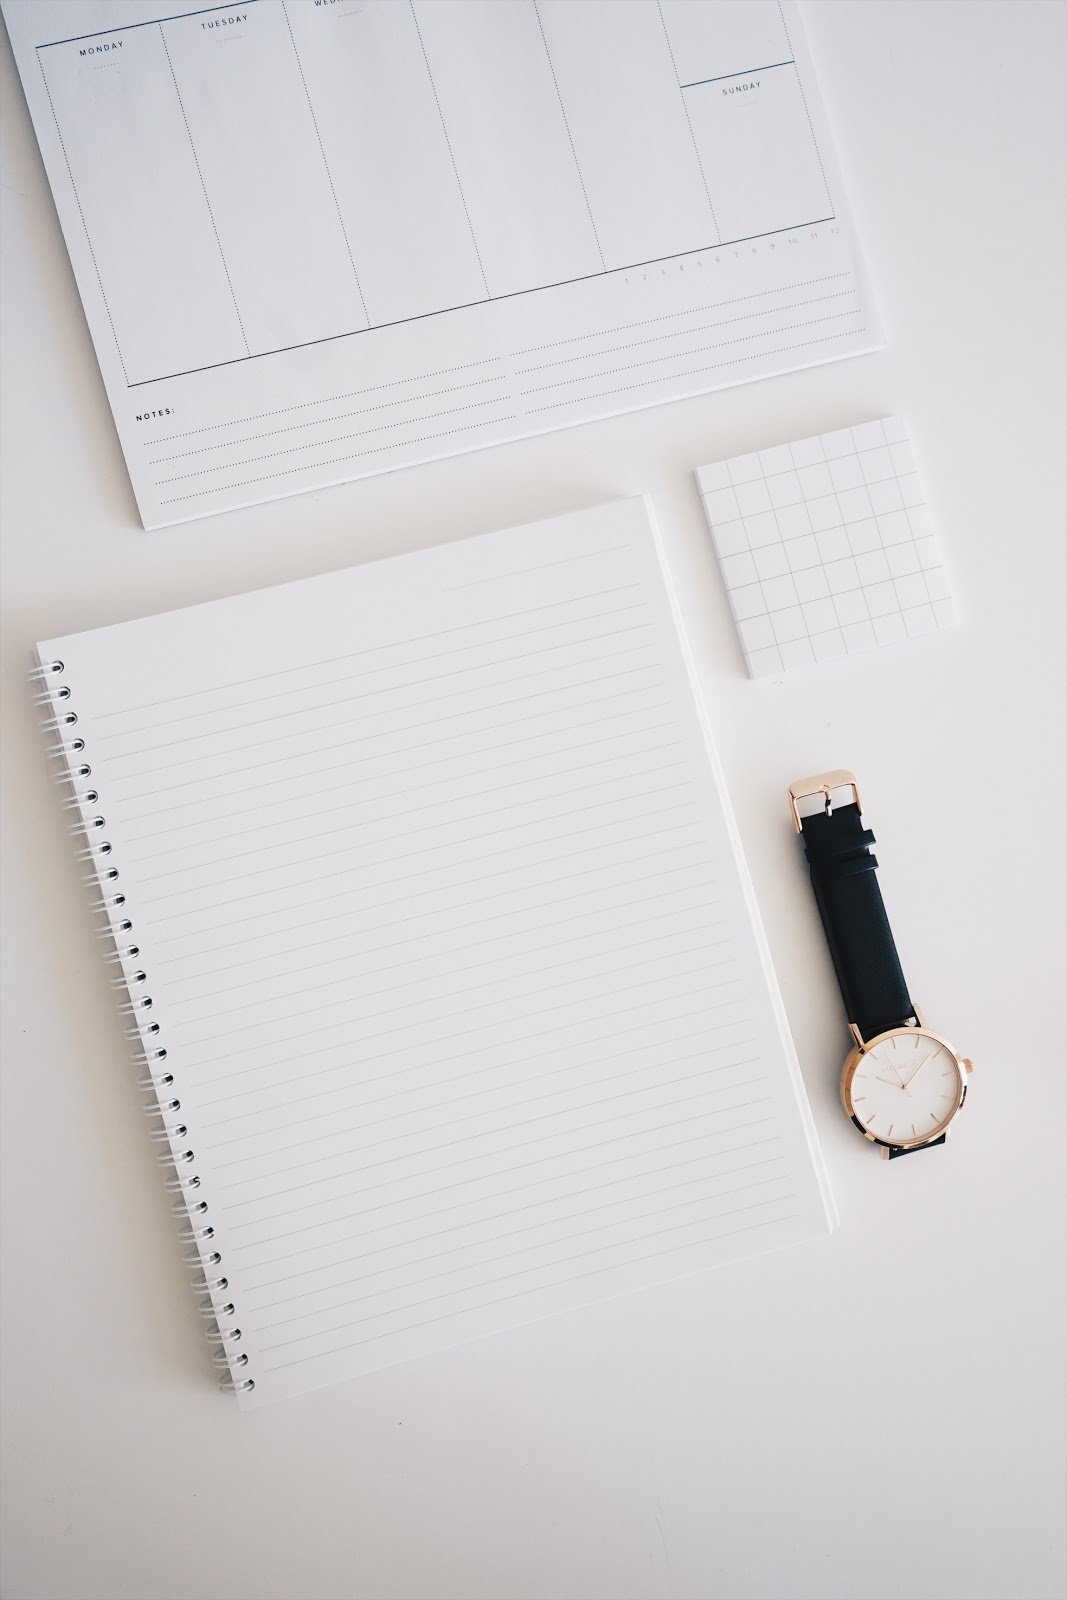 White blank notepad with a coil spine and watch on a clean white desktop.